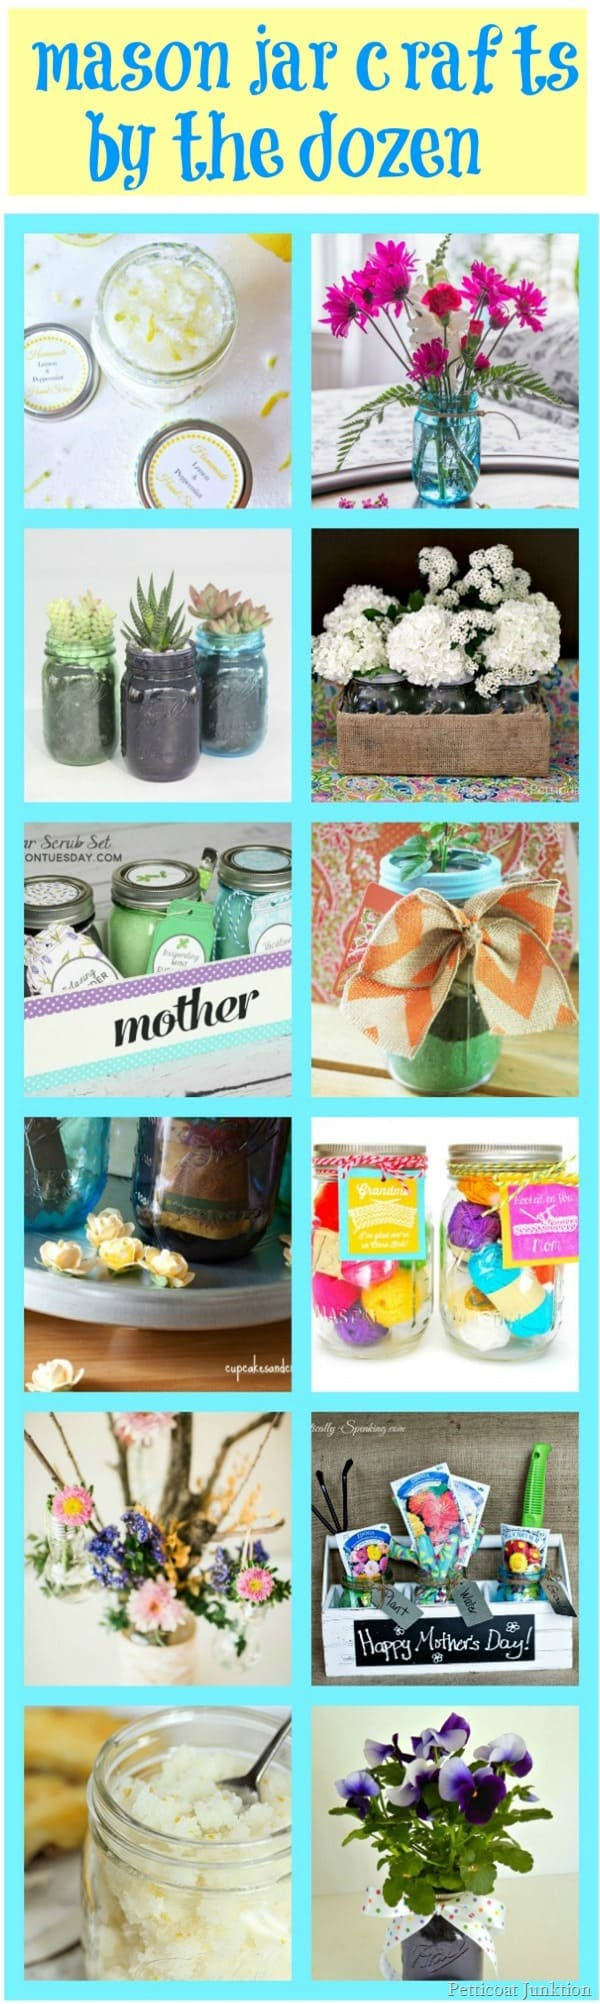 Mason Jar Crafts by the Dozen